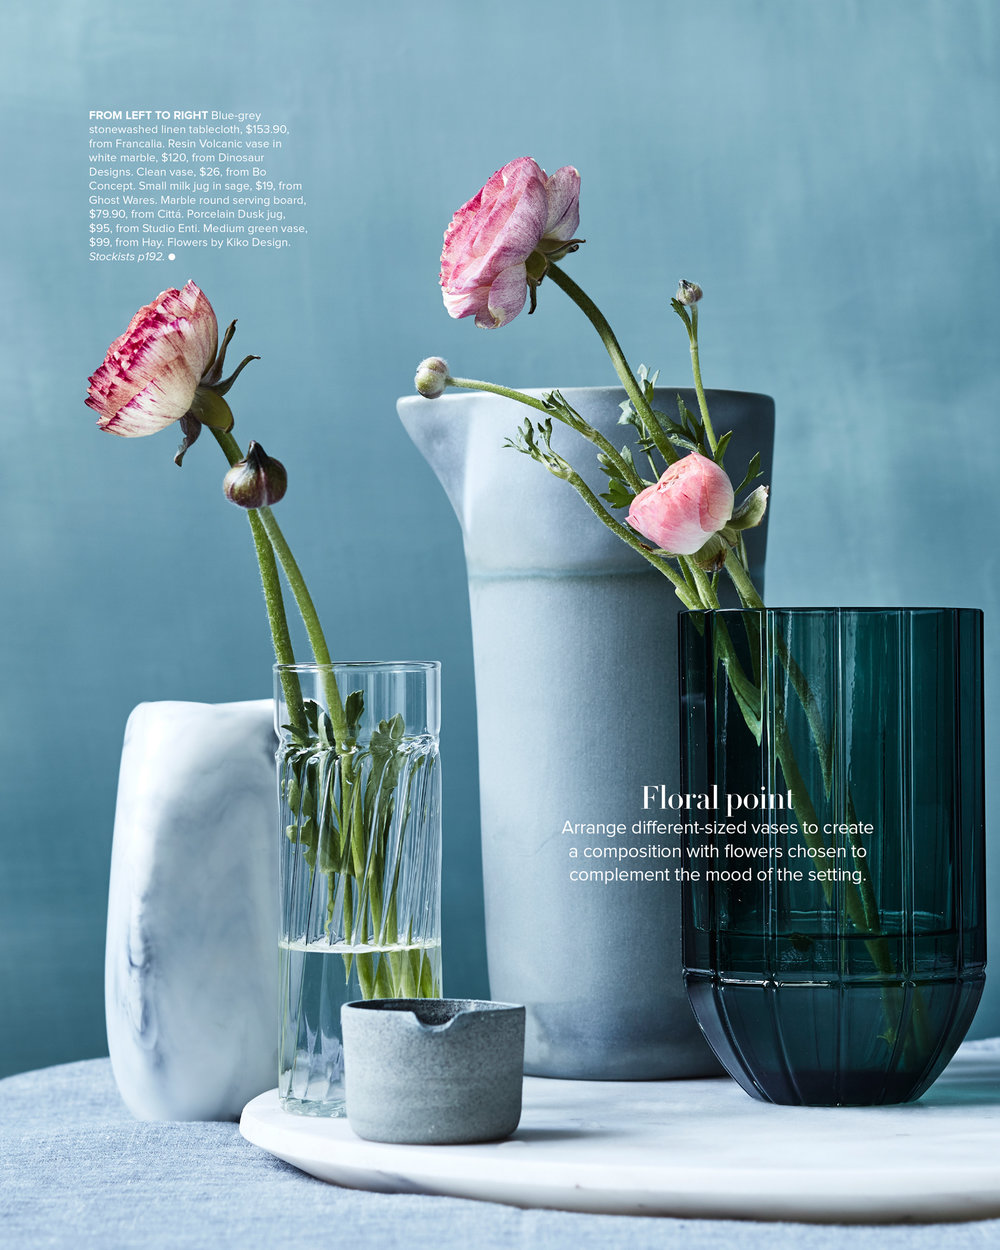 Kiko-Design_Table-settings_Gourmet-Traveller_-Press_Sydney-Florist-2.jpg